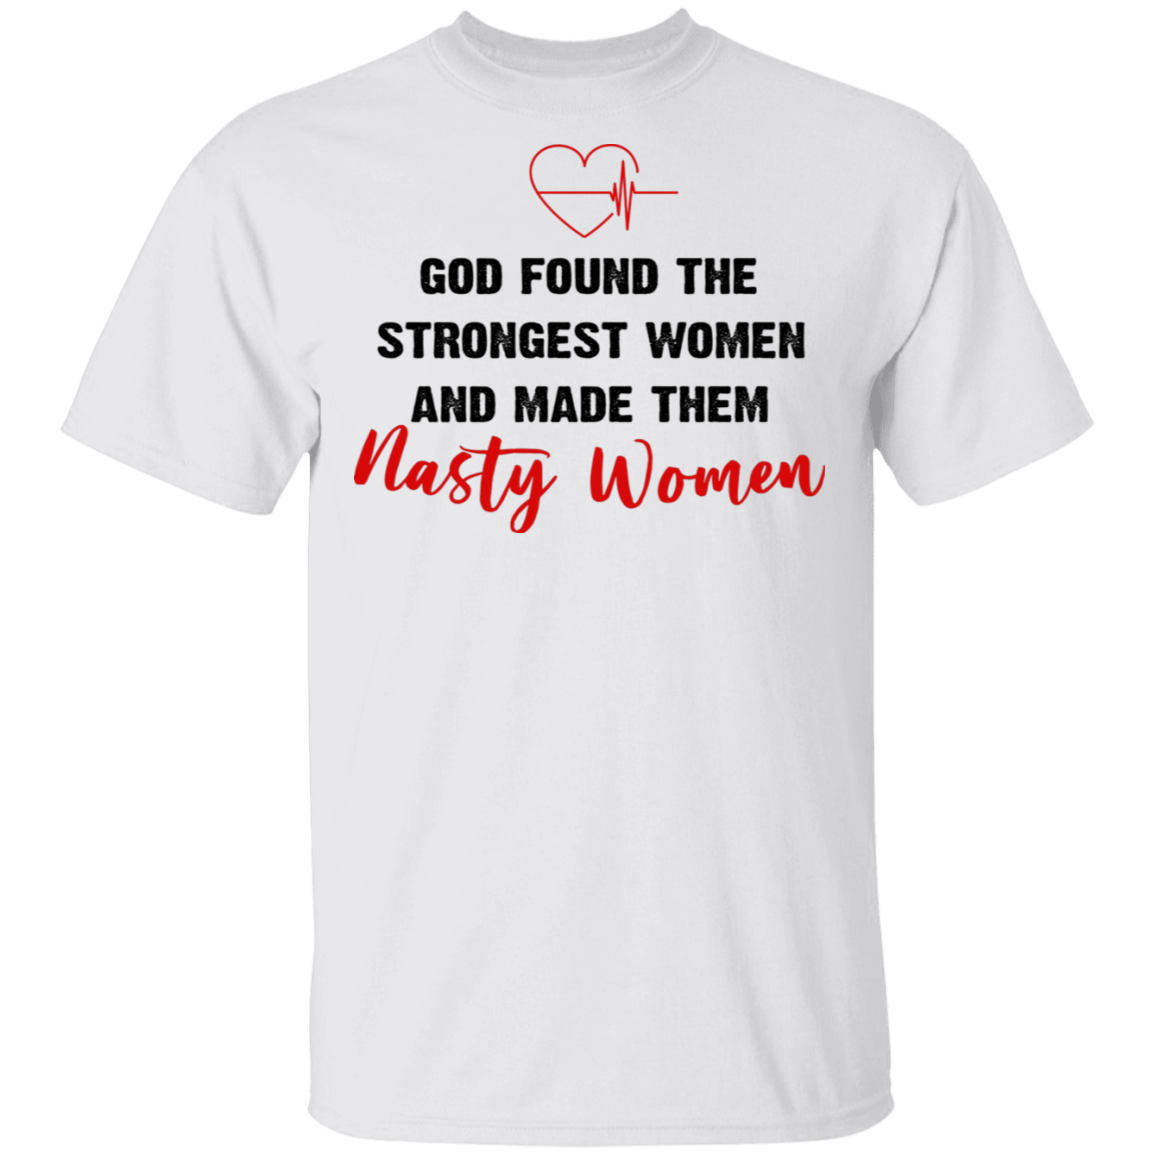 God Found The Strongest Women And Made Them Nasty Women T-Shirt Vote Biden.Harris For President